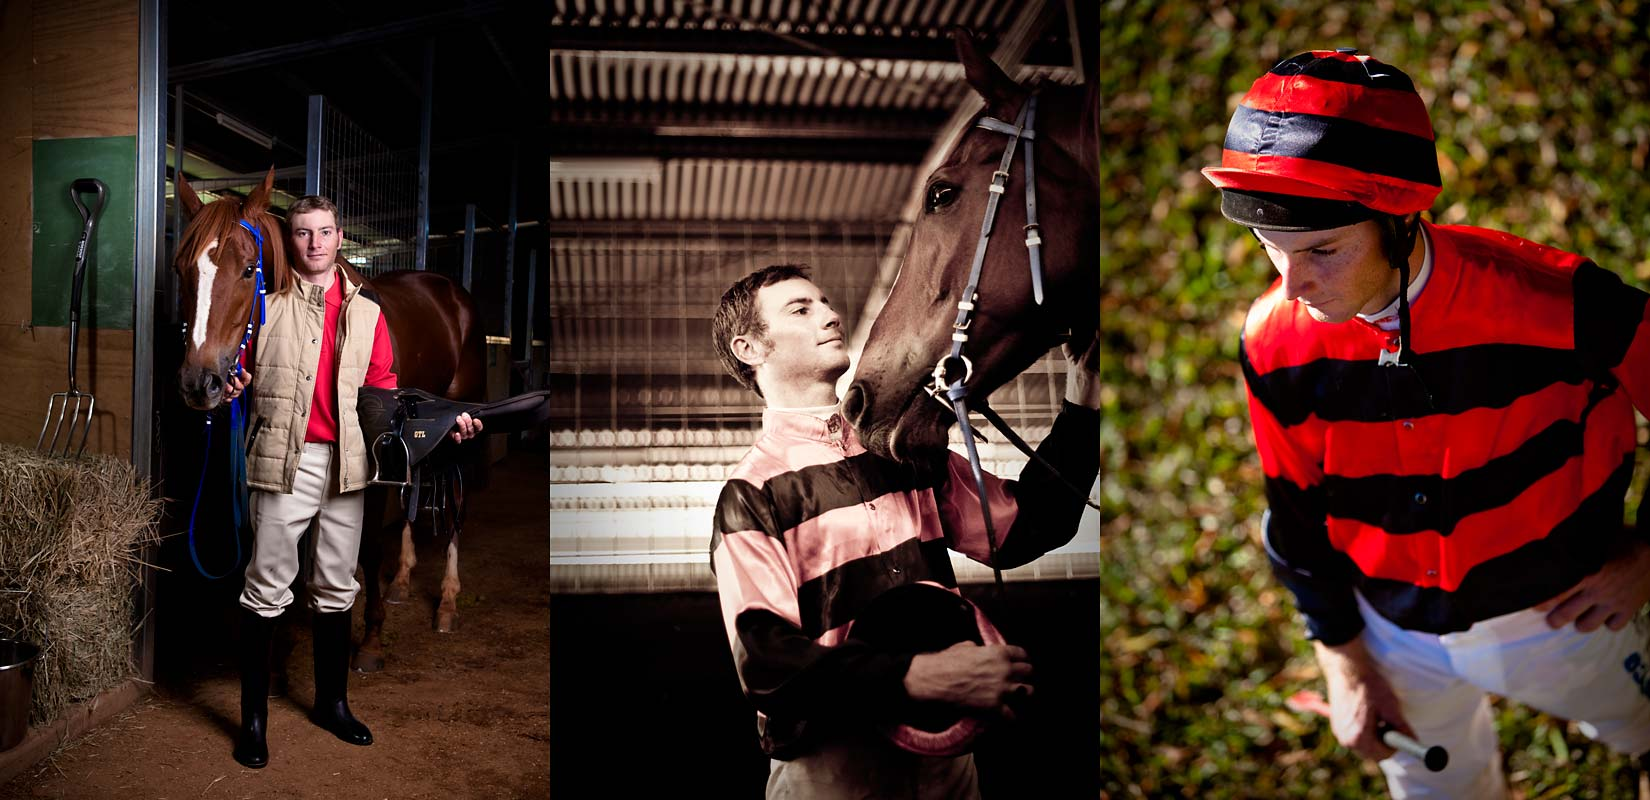 Sports Portrait Photography - David Crossland, jockey